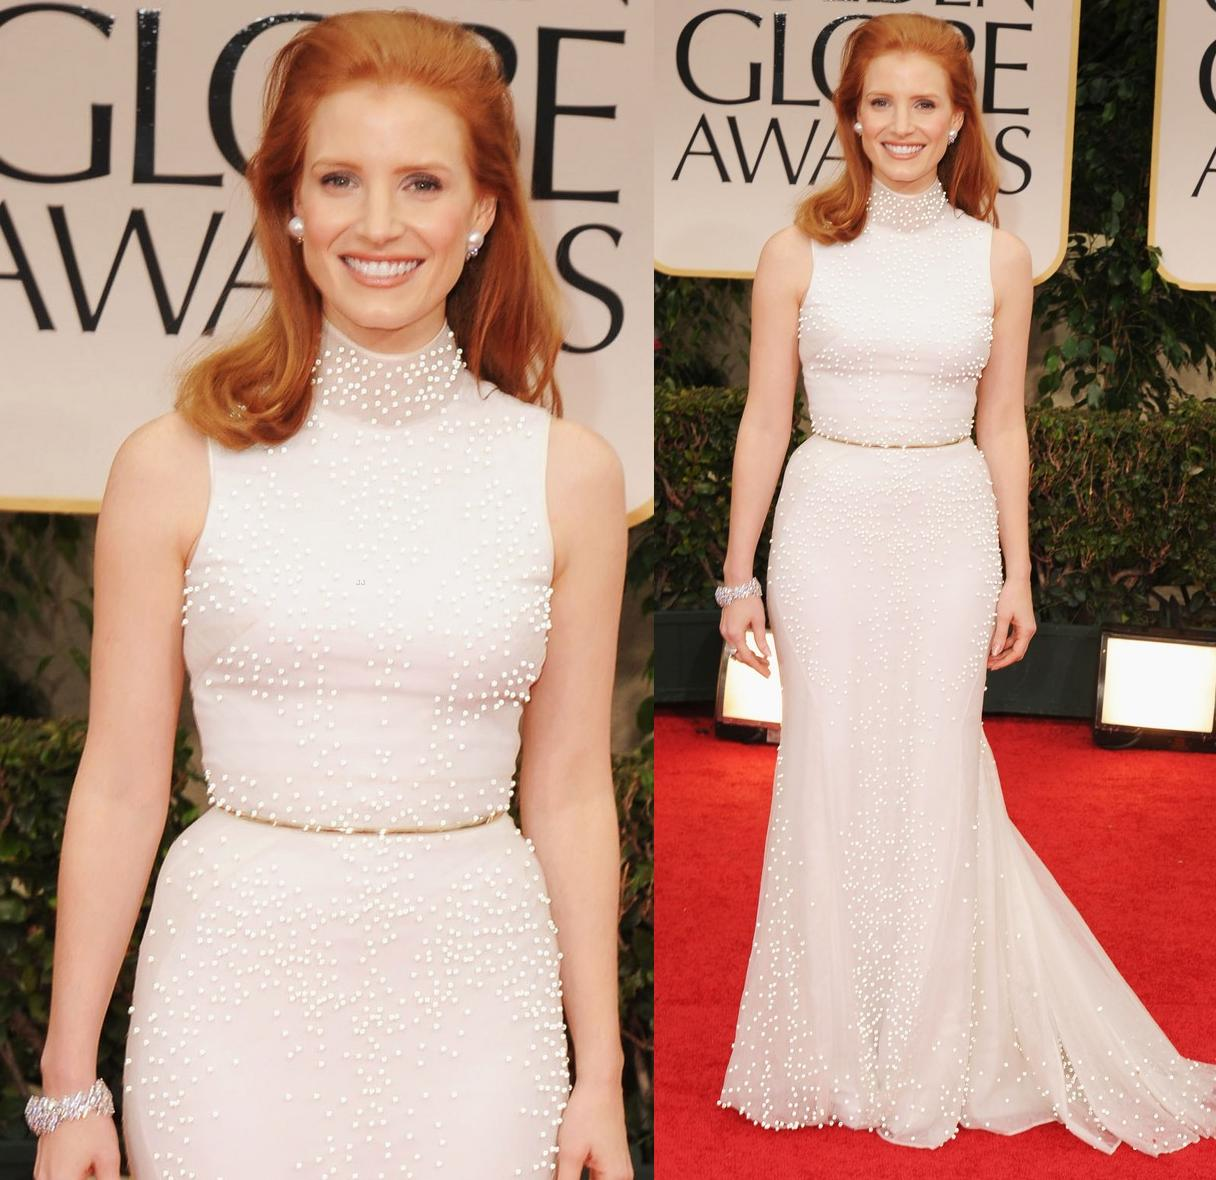 http://1.bp.blogspot.com/-qwZHJtbi6fc/TxSSIl1zb9I/AAAAAAAAEWI/5ulFI4pt9ho/s1600/Jessica+Chastain+In+Givenchy+Fall+2011.jpg